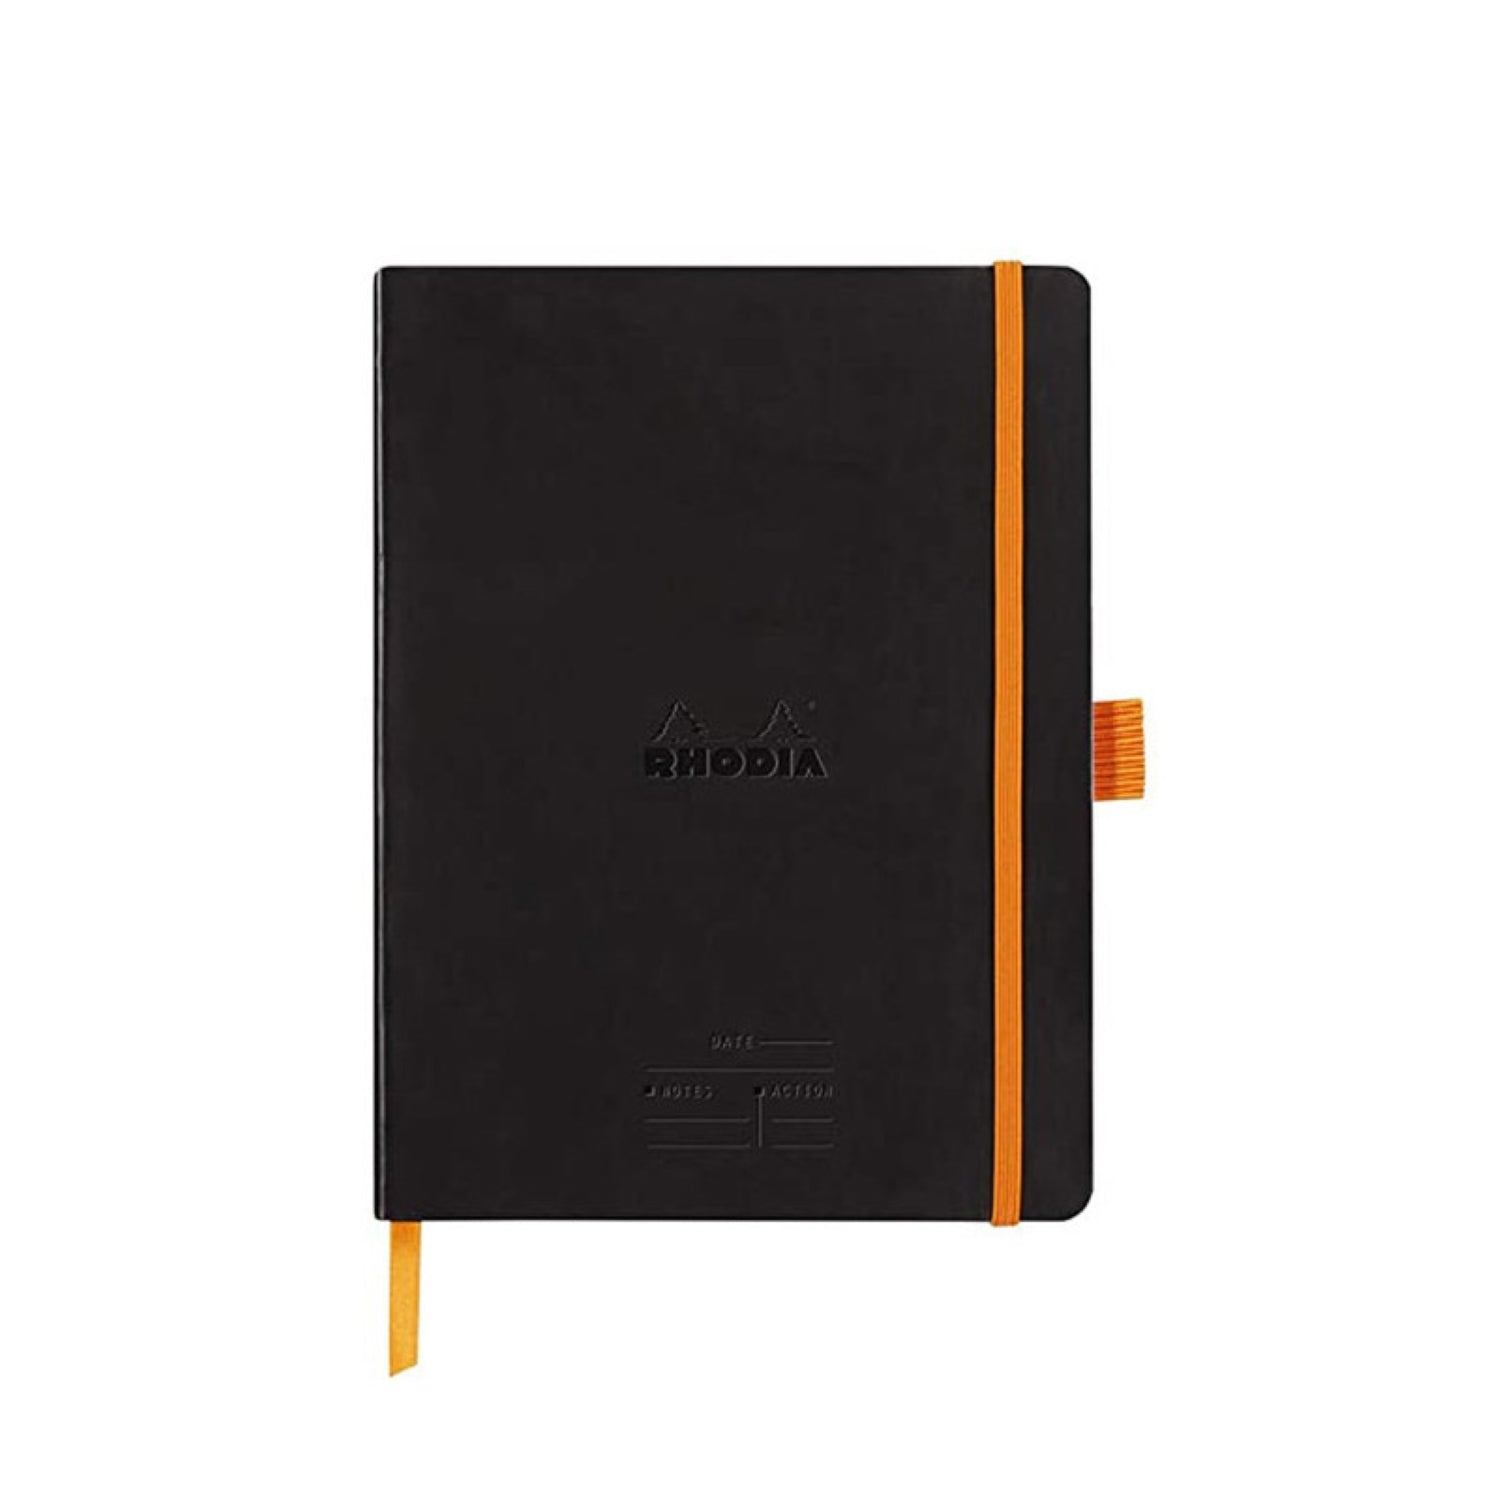 Rhodia Meeting Book A5 Ruled Soft Cover Black